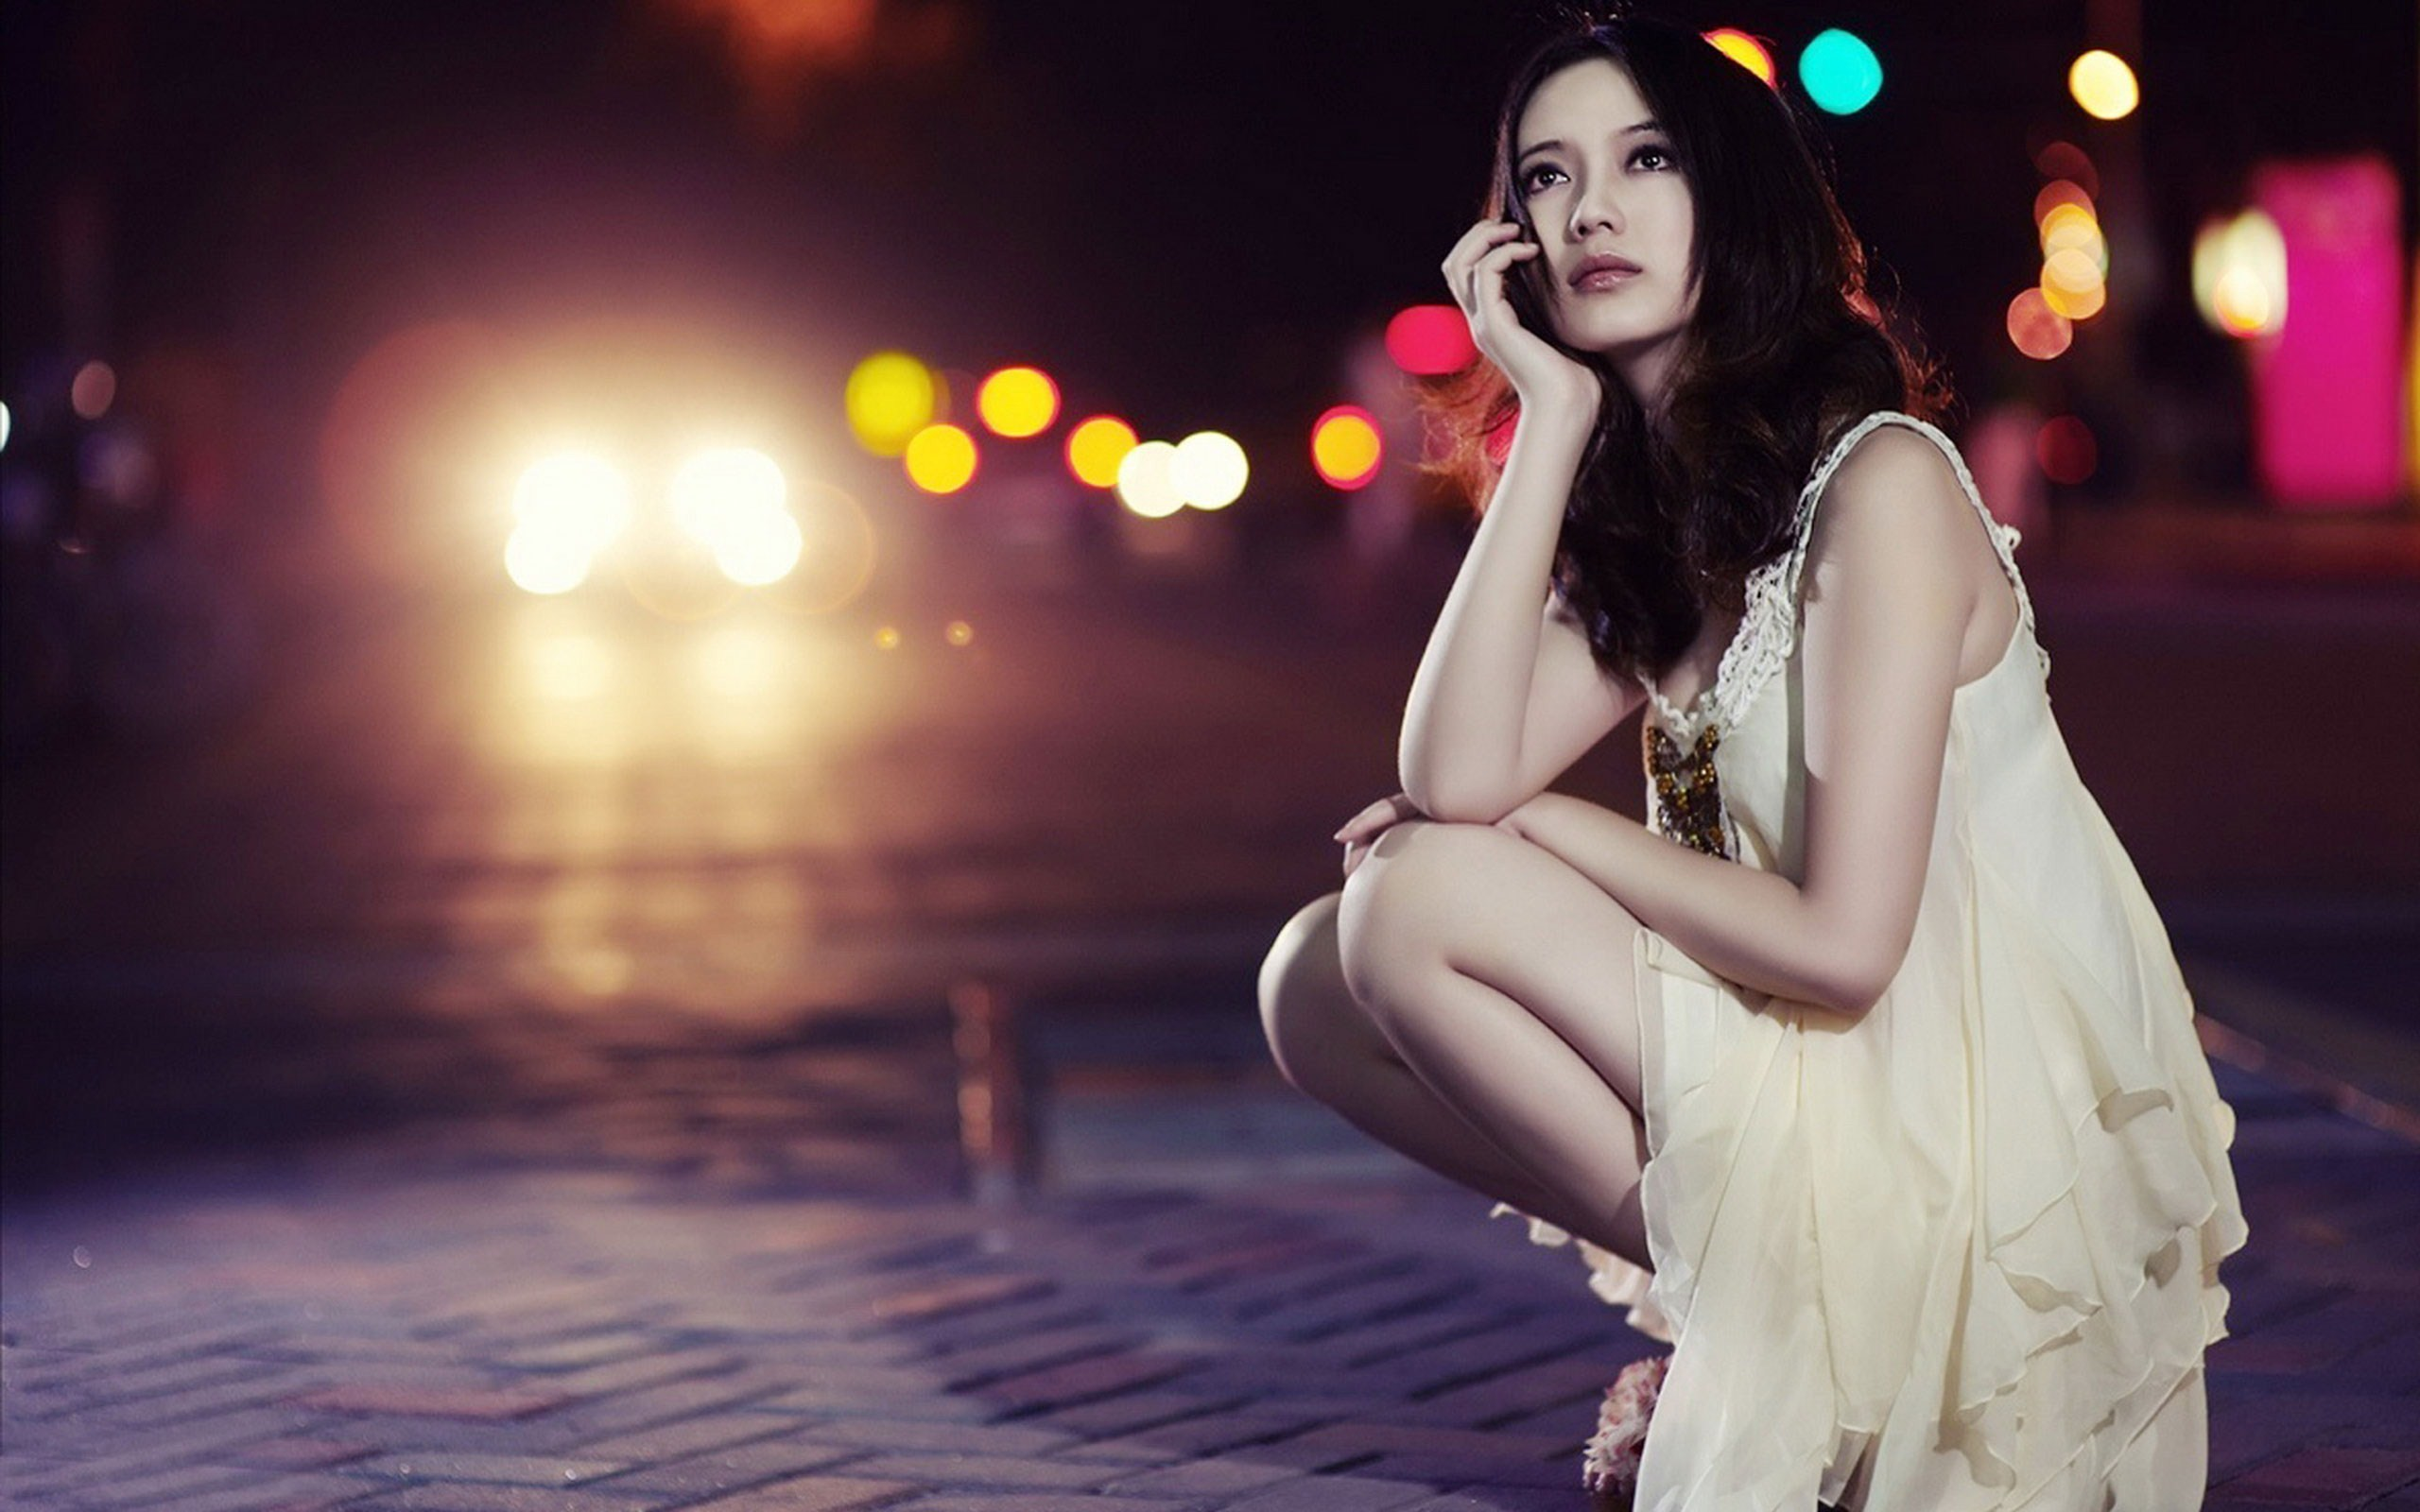 Photo City Night Lights Beauty Asian Girl